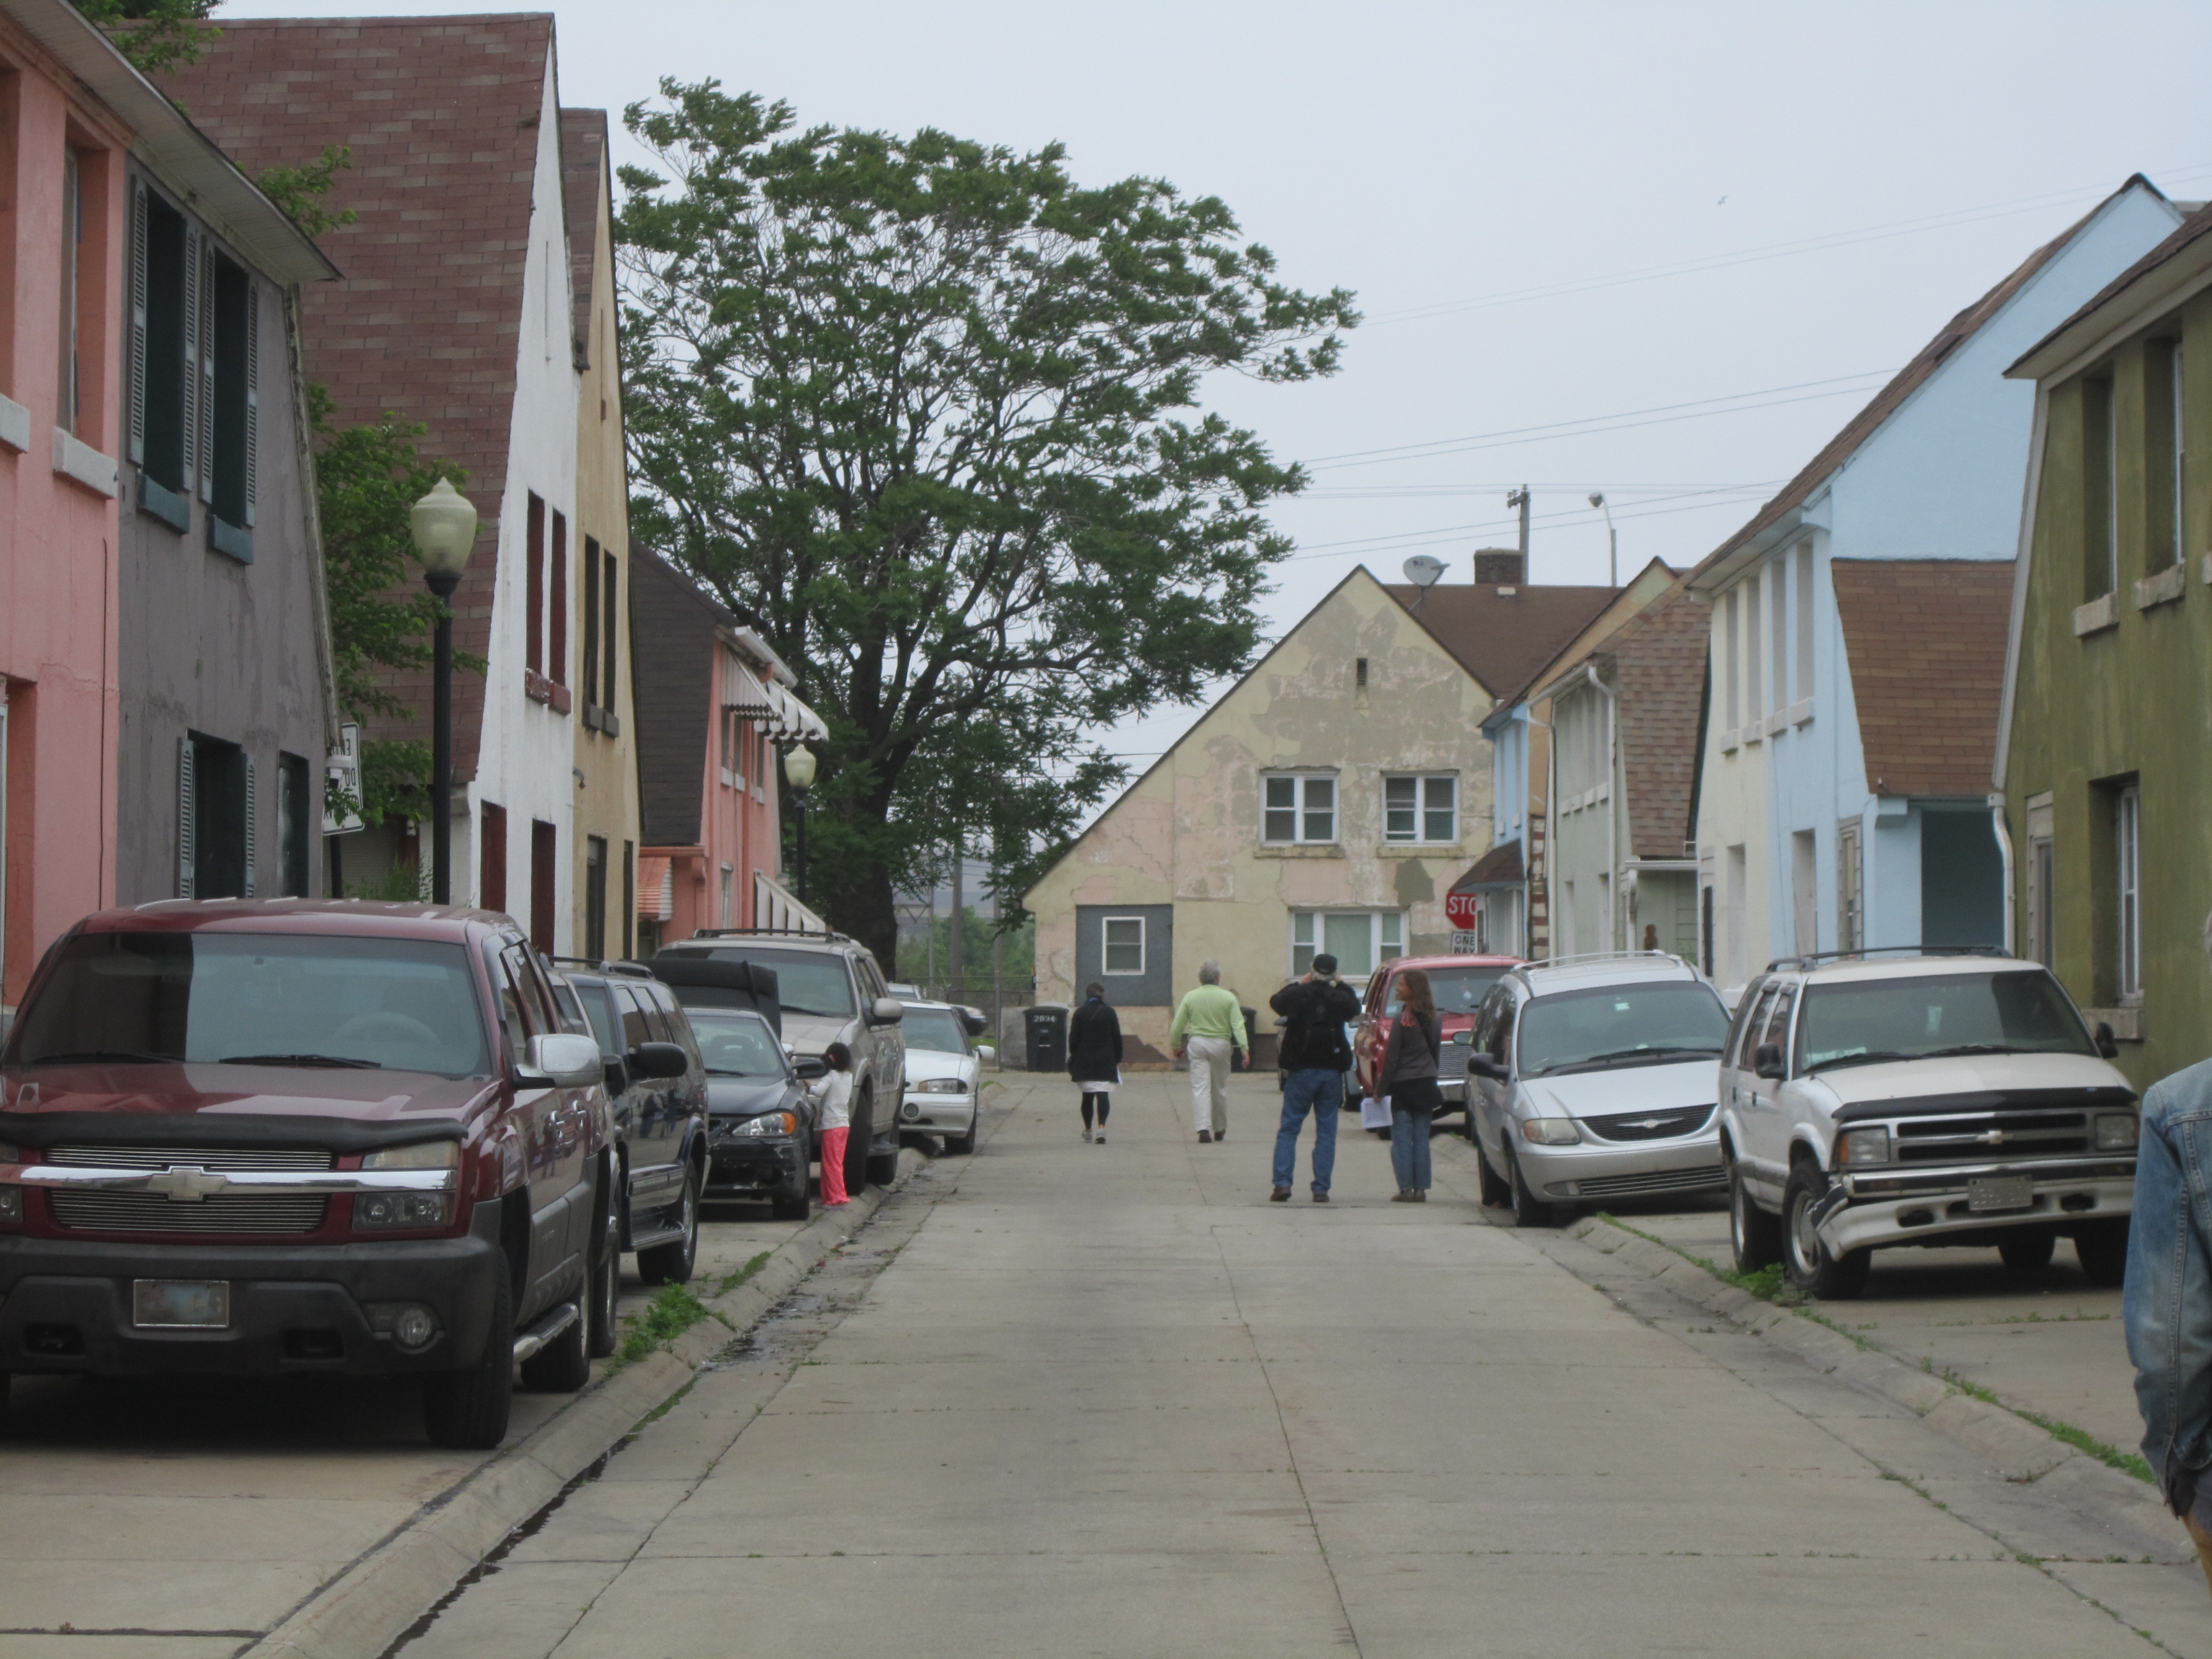 VAF Tour of Marktown, photo courtesy of author